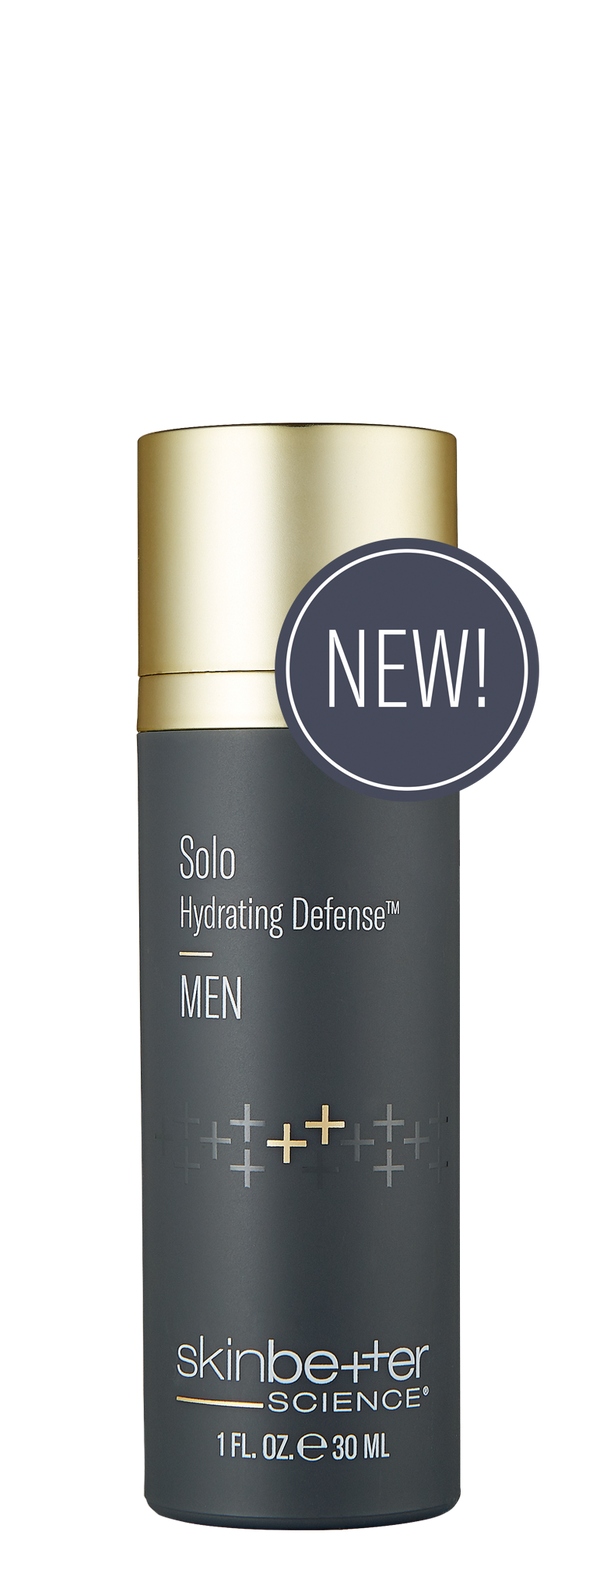 Skinbetter Science Solo Hydrating Defense™ MEN